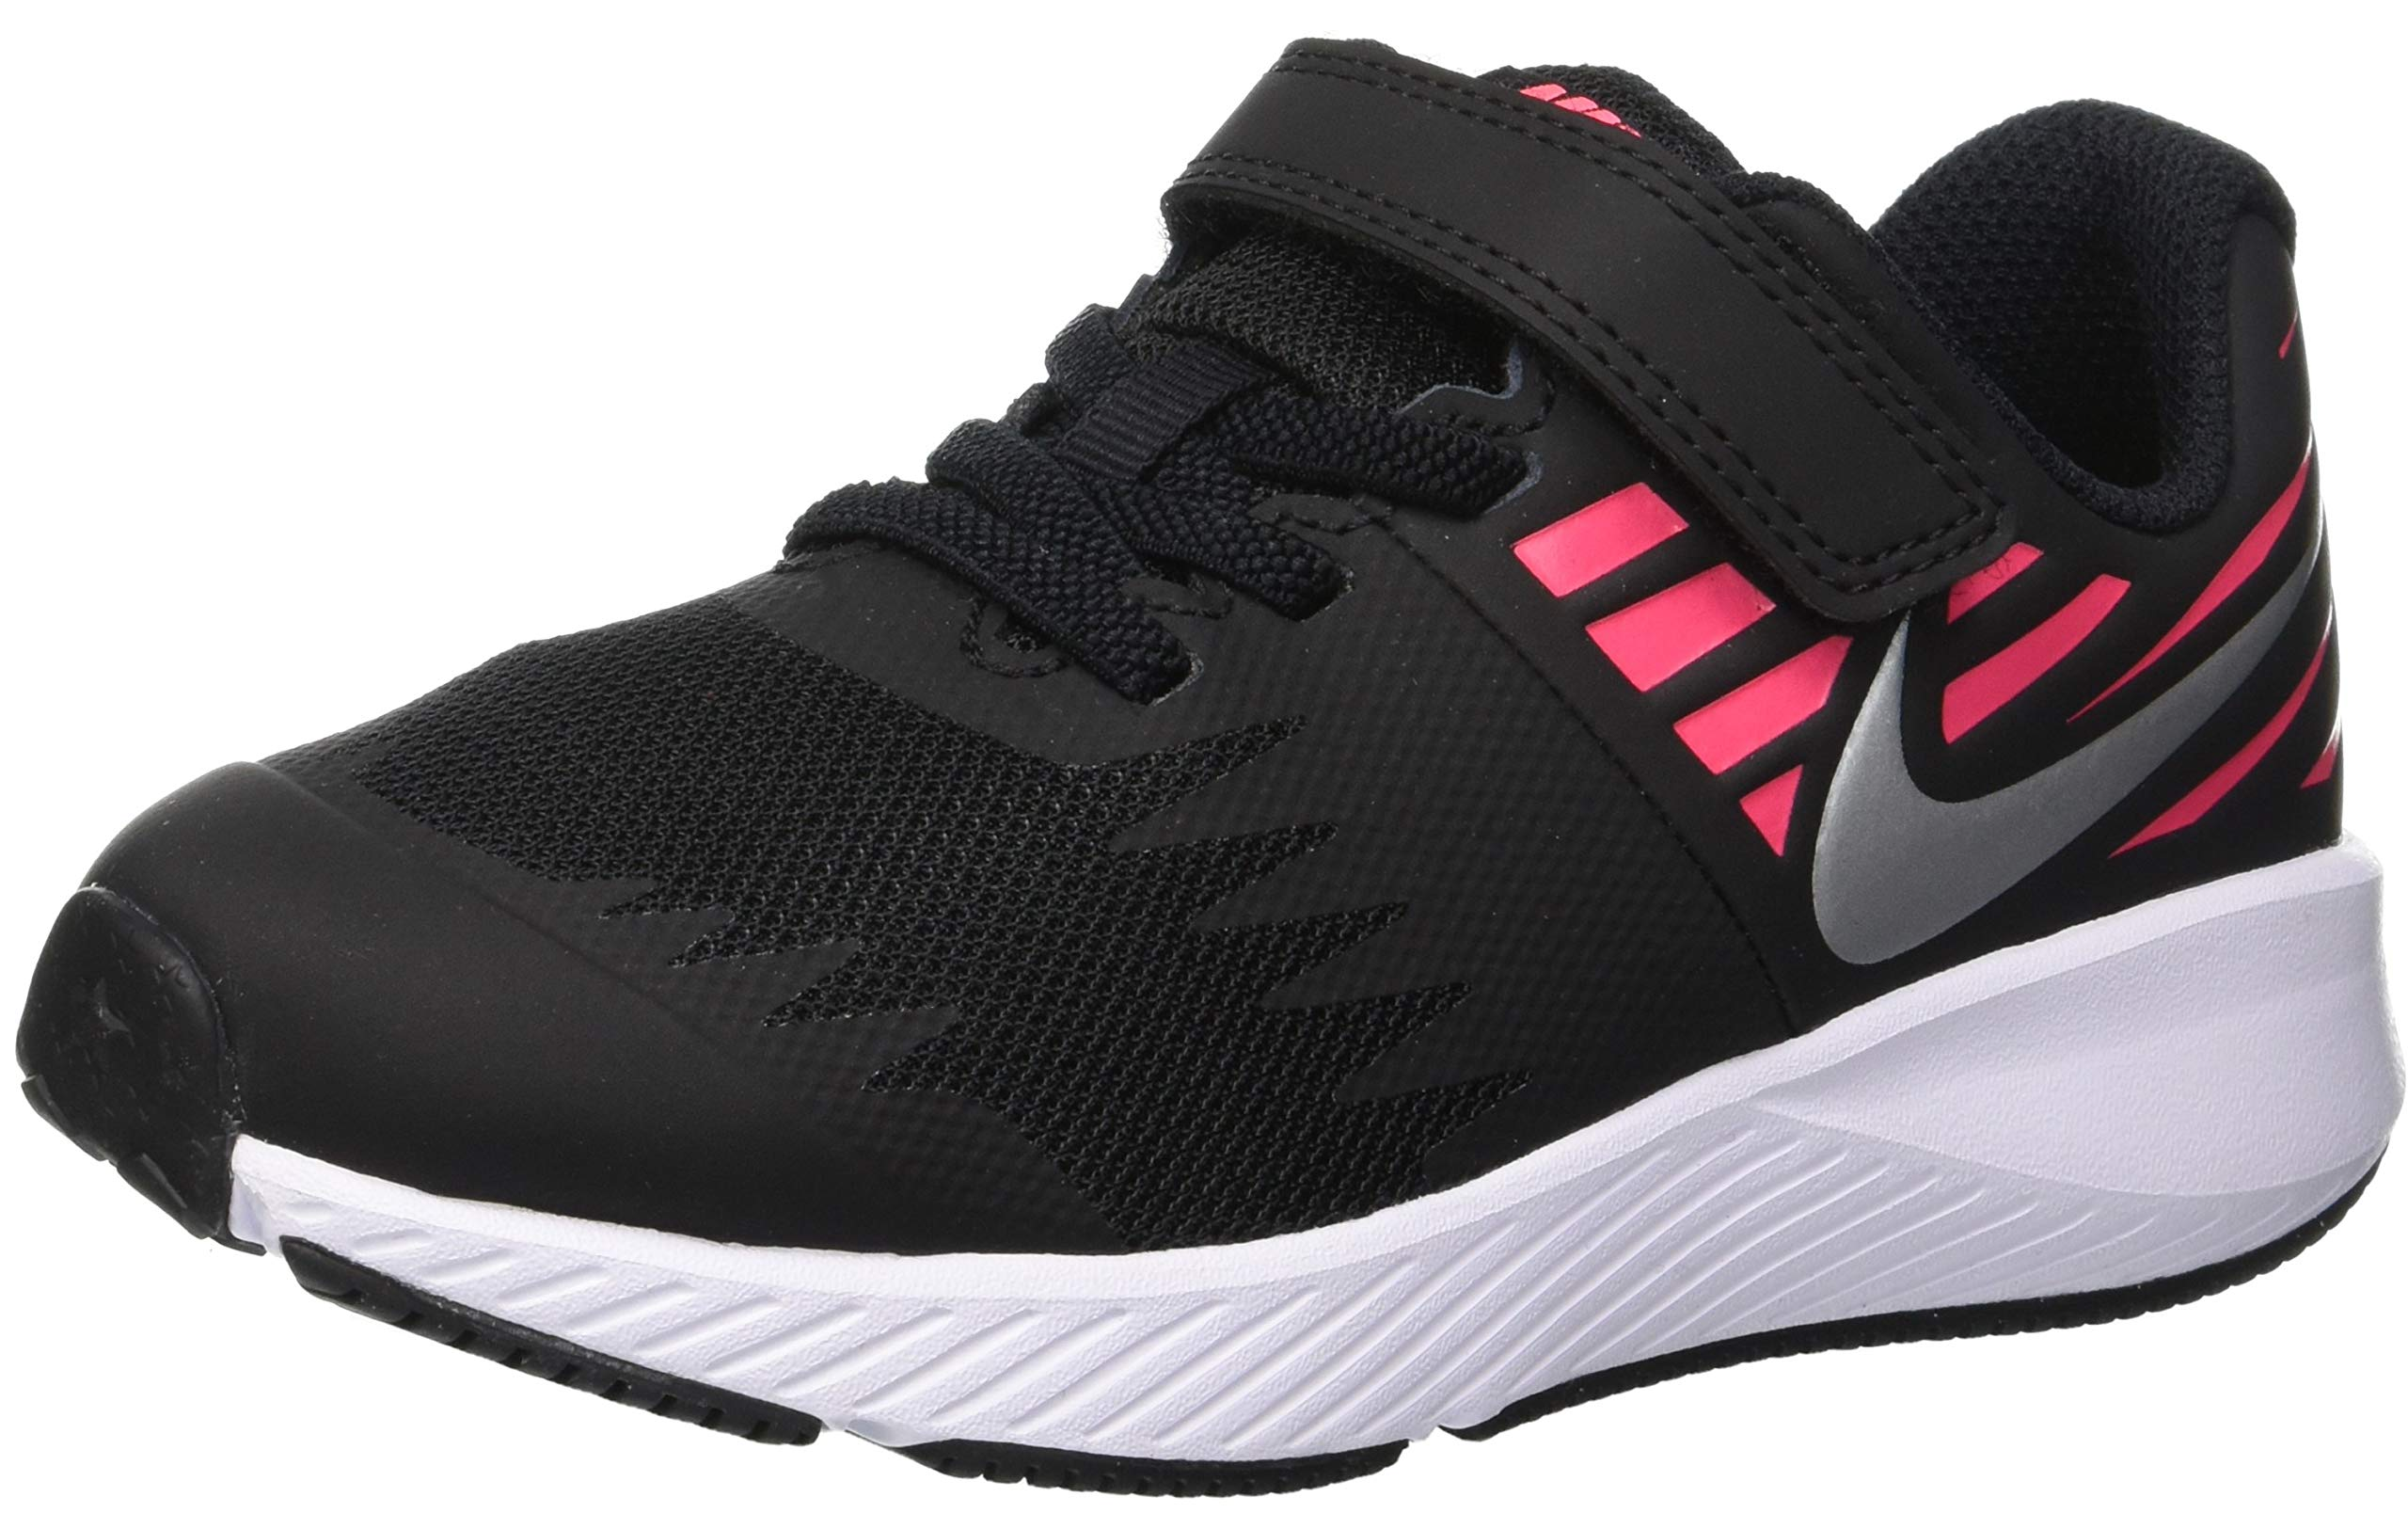 Nike Girl's Star Runner (PSV) Pre-School Shoe Black/Metallic Silver/Racer Pink/Volt Size 1.5 M US by Nike (Image #1)